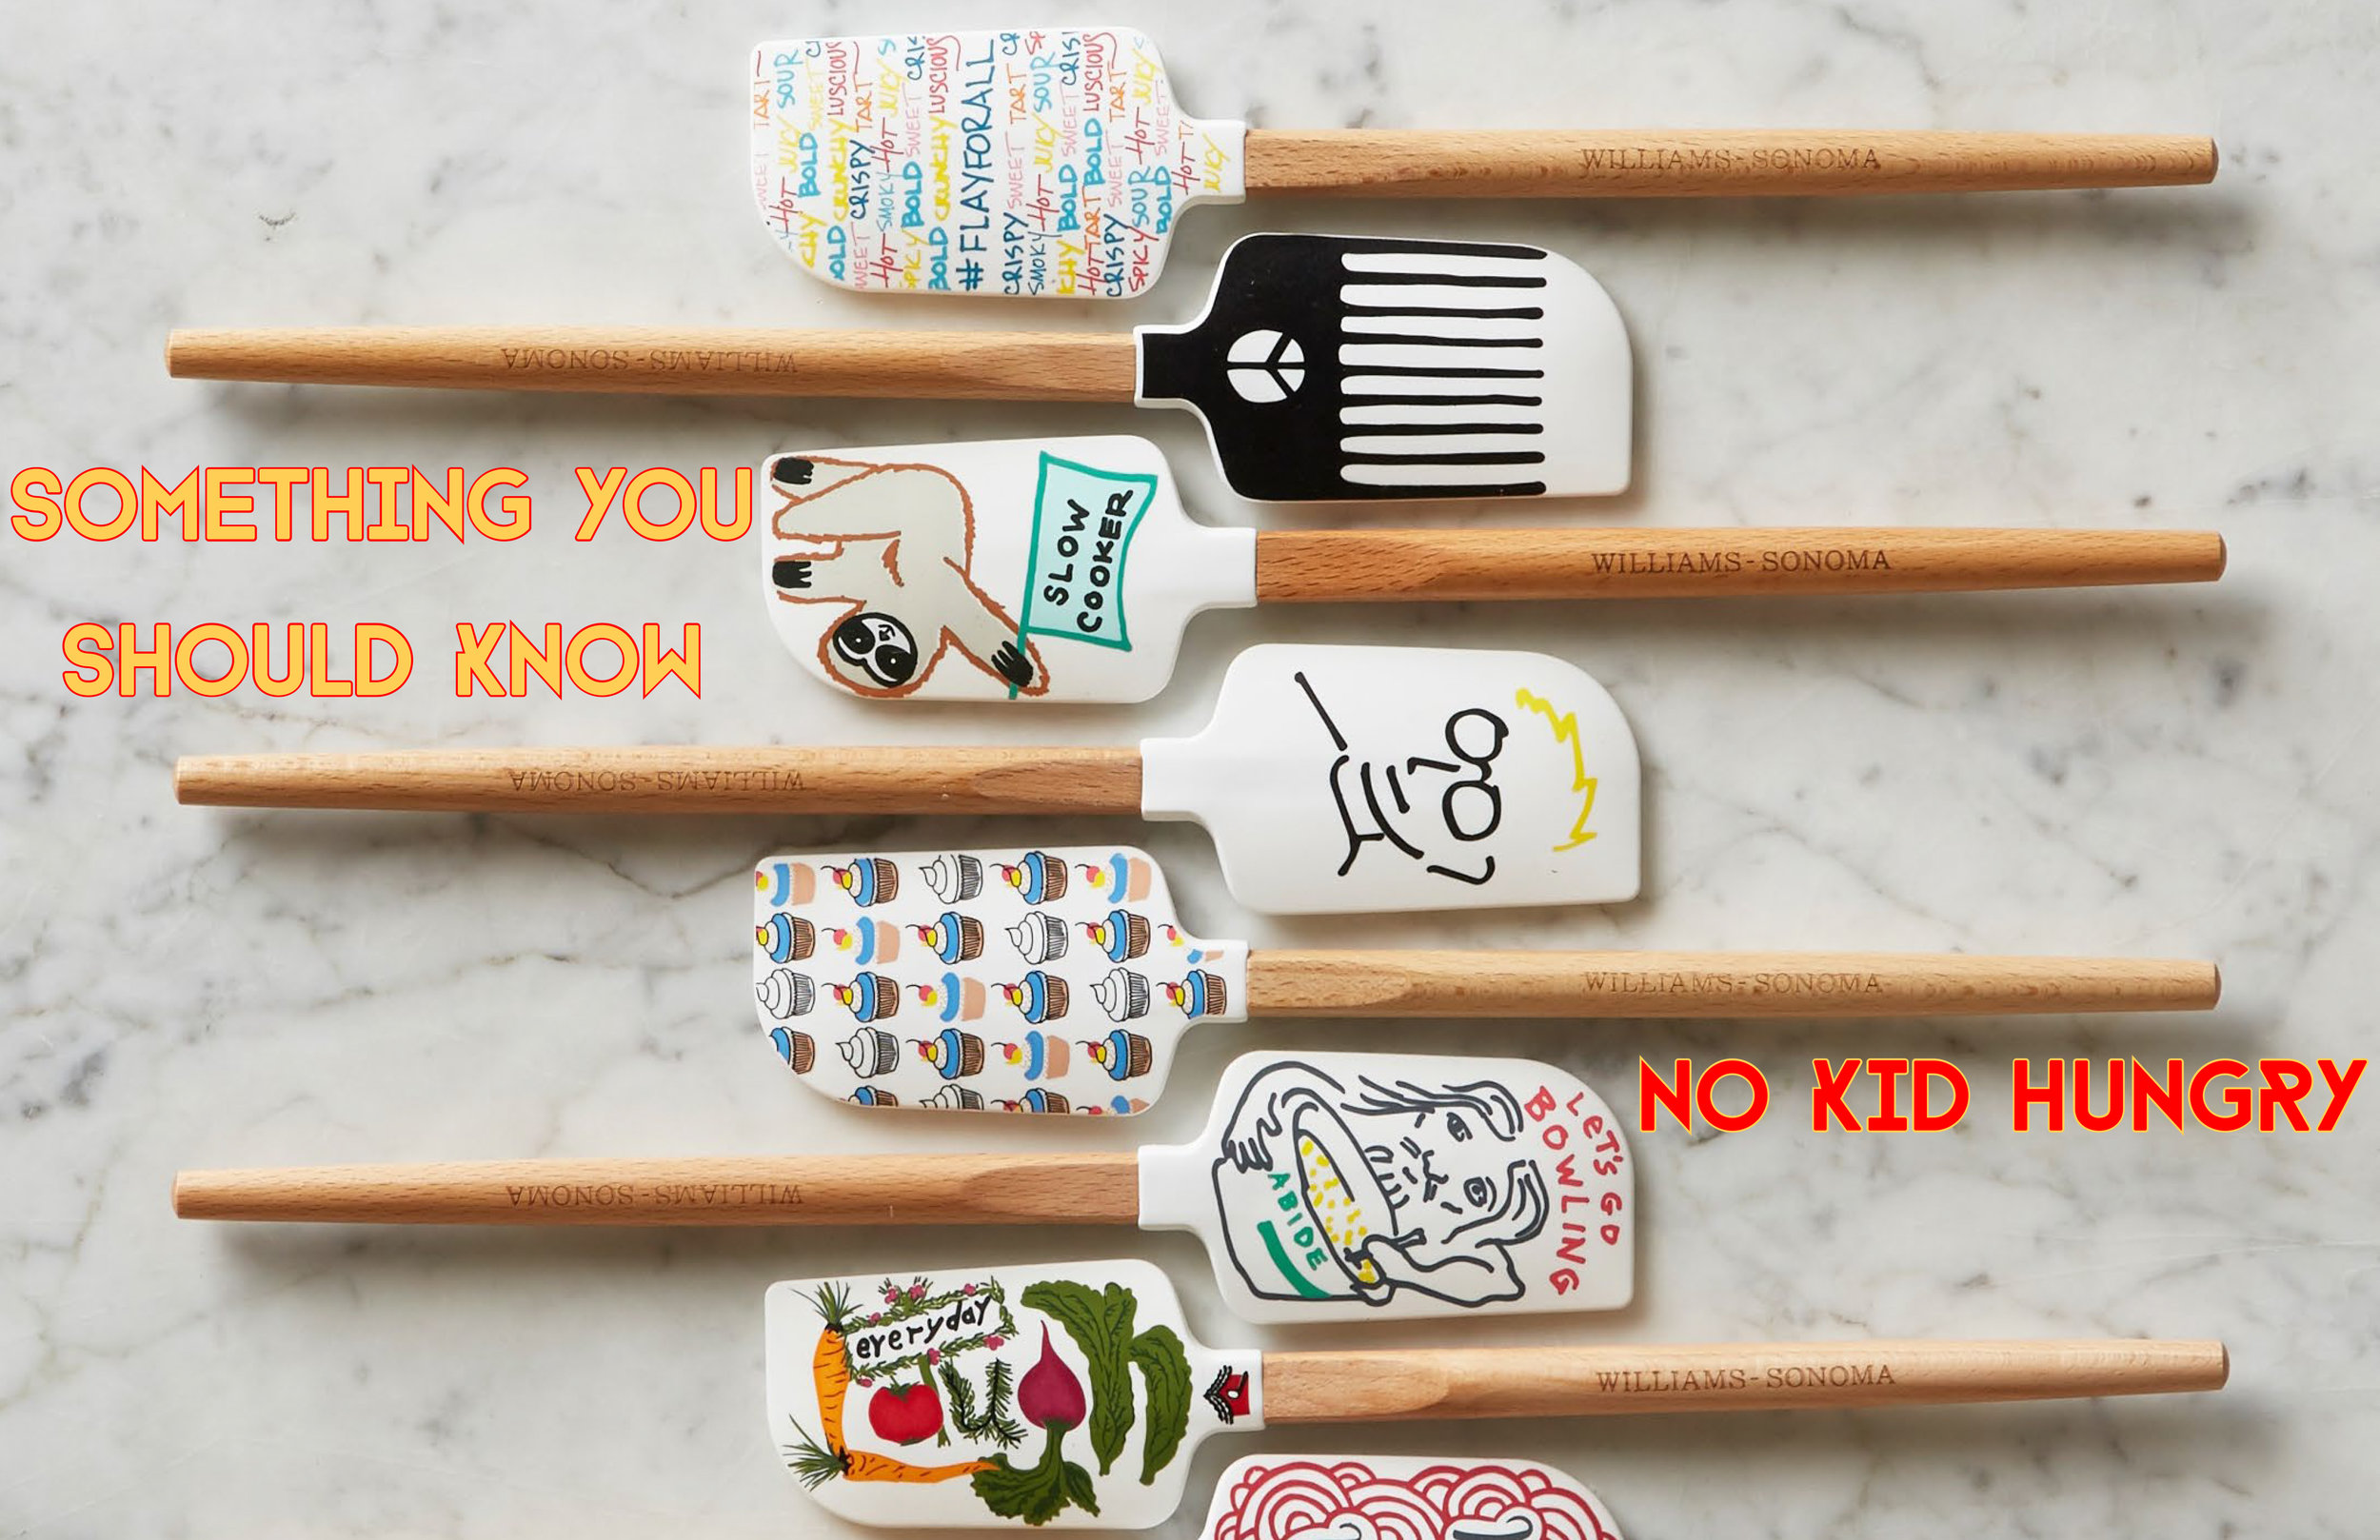 AM AUG SOMETHING YOU SHOULD KNOW NO KID HUNGRY-1.jpg